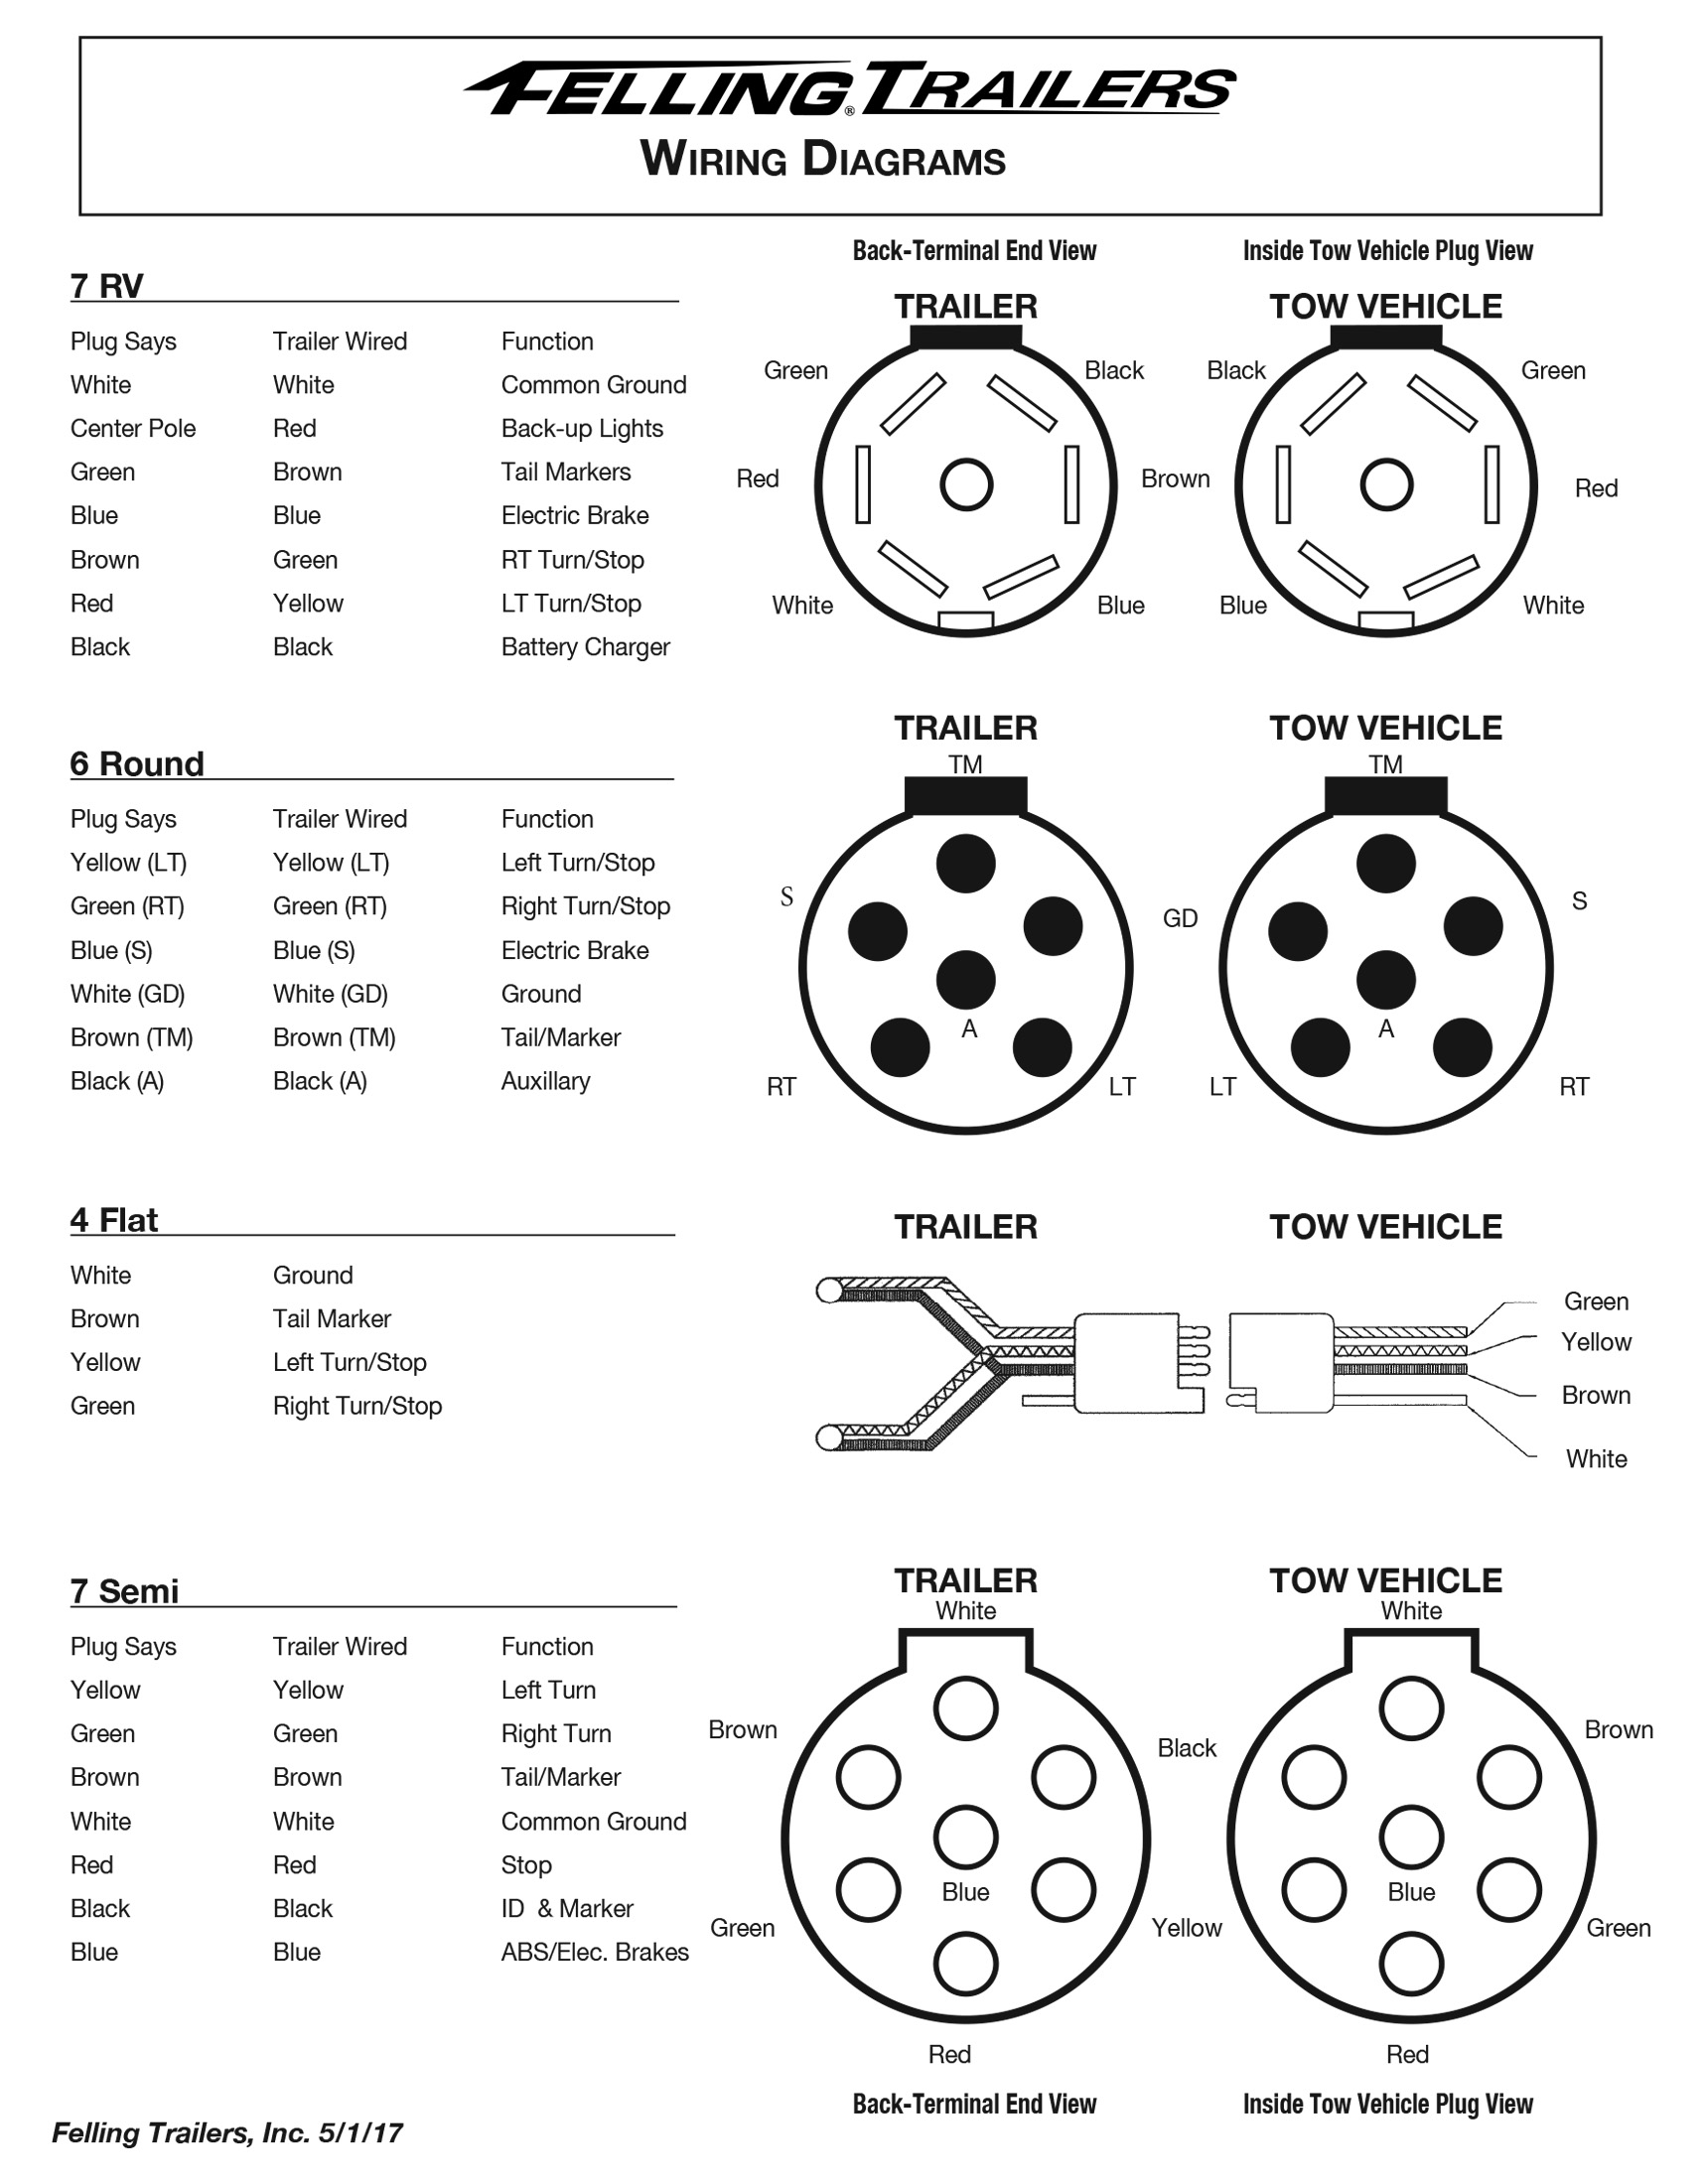 Service Felling Trailers Wiring Diagrams Wheel Toque Diagram For St Maintenance Torque Charts Tire Chart Questions